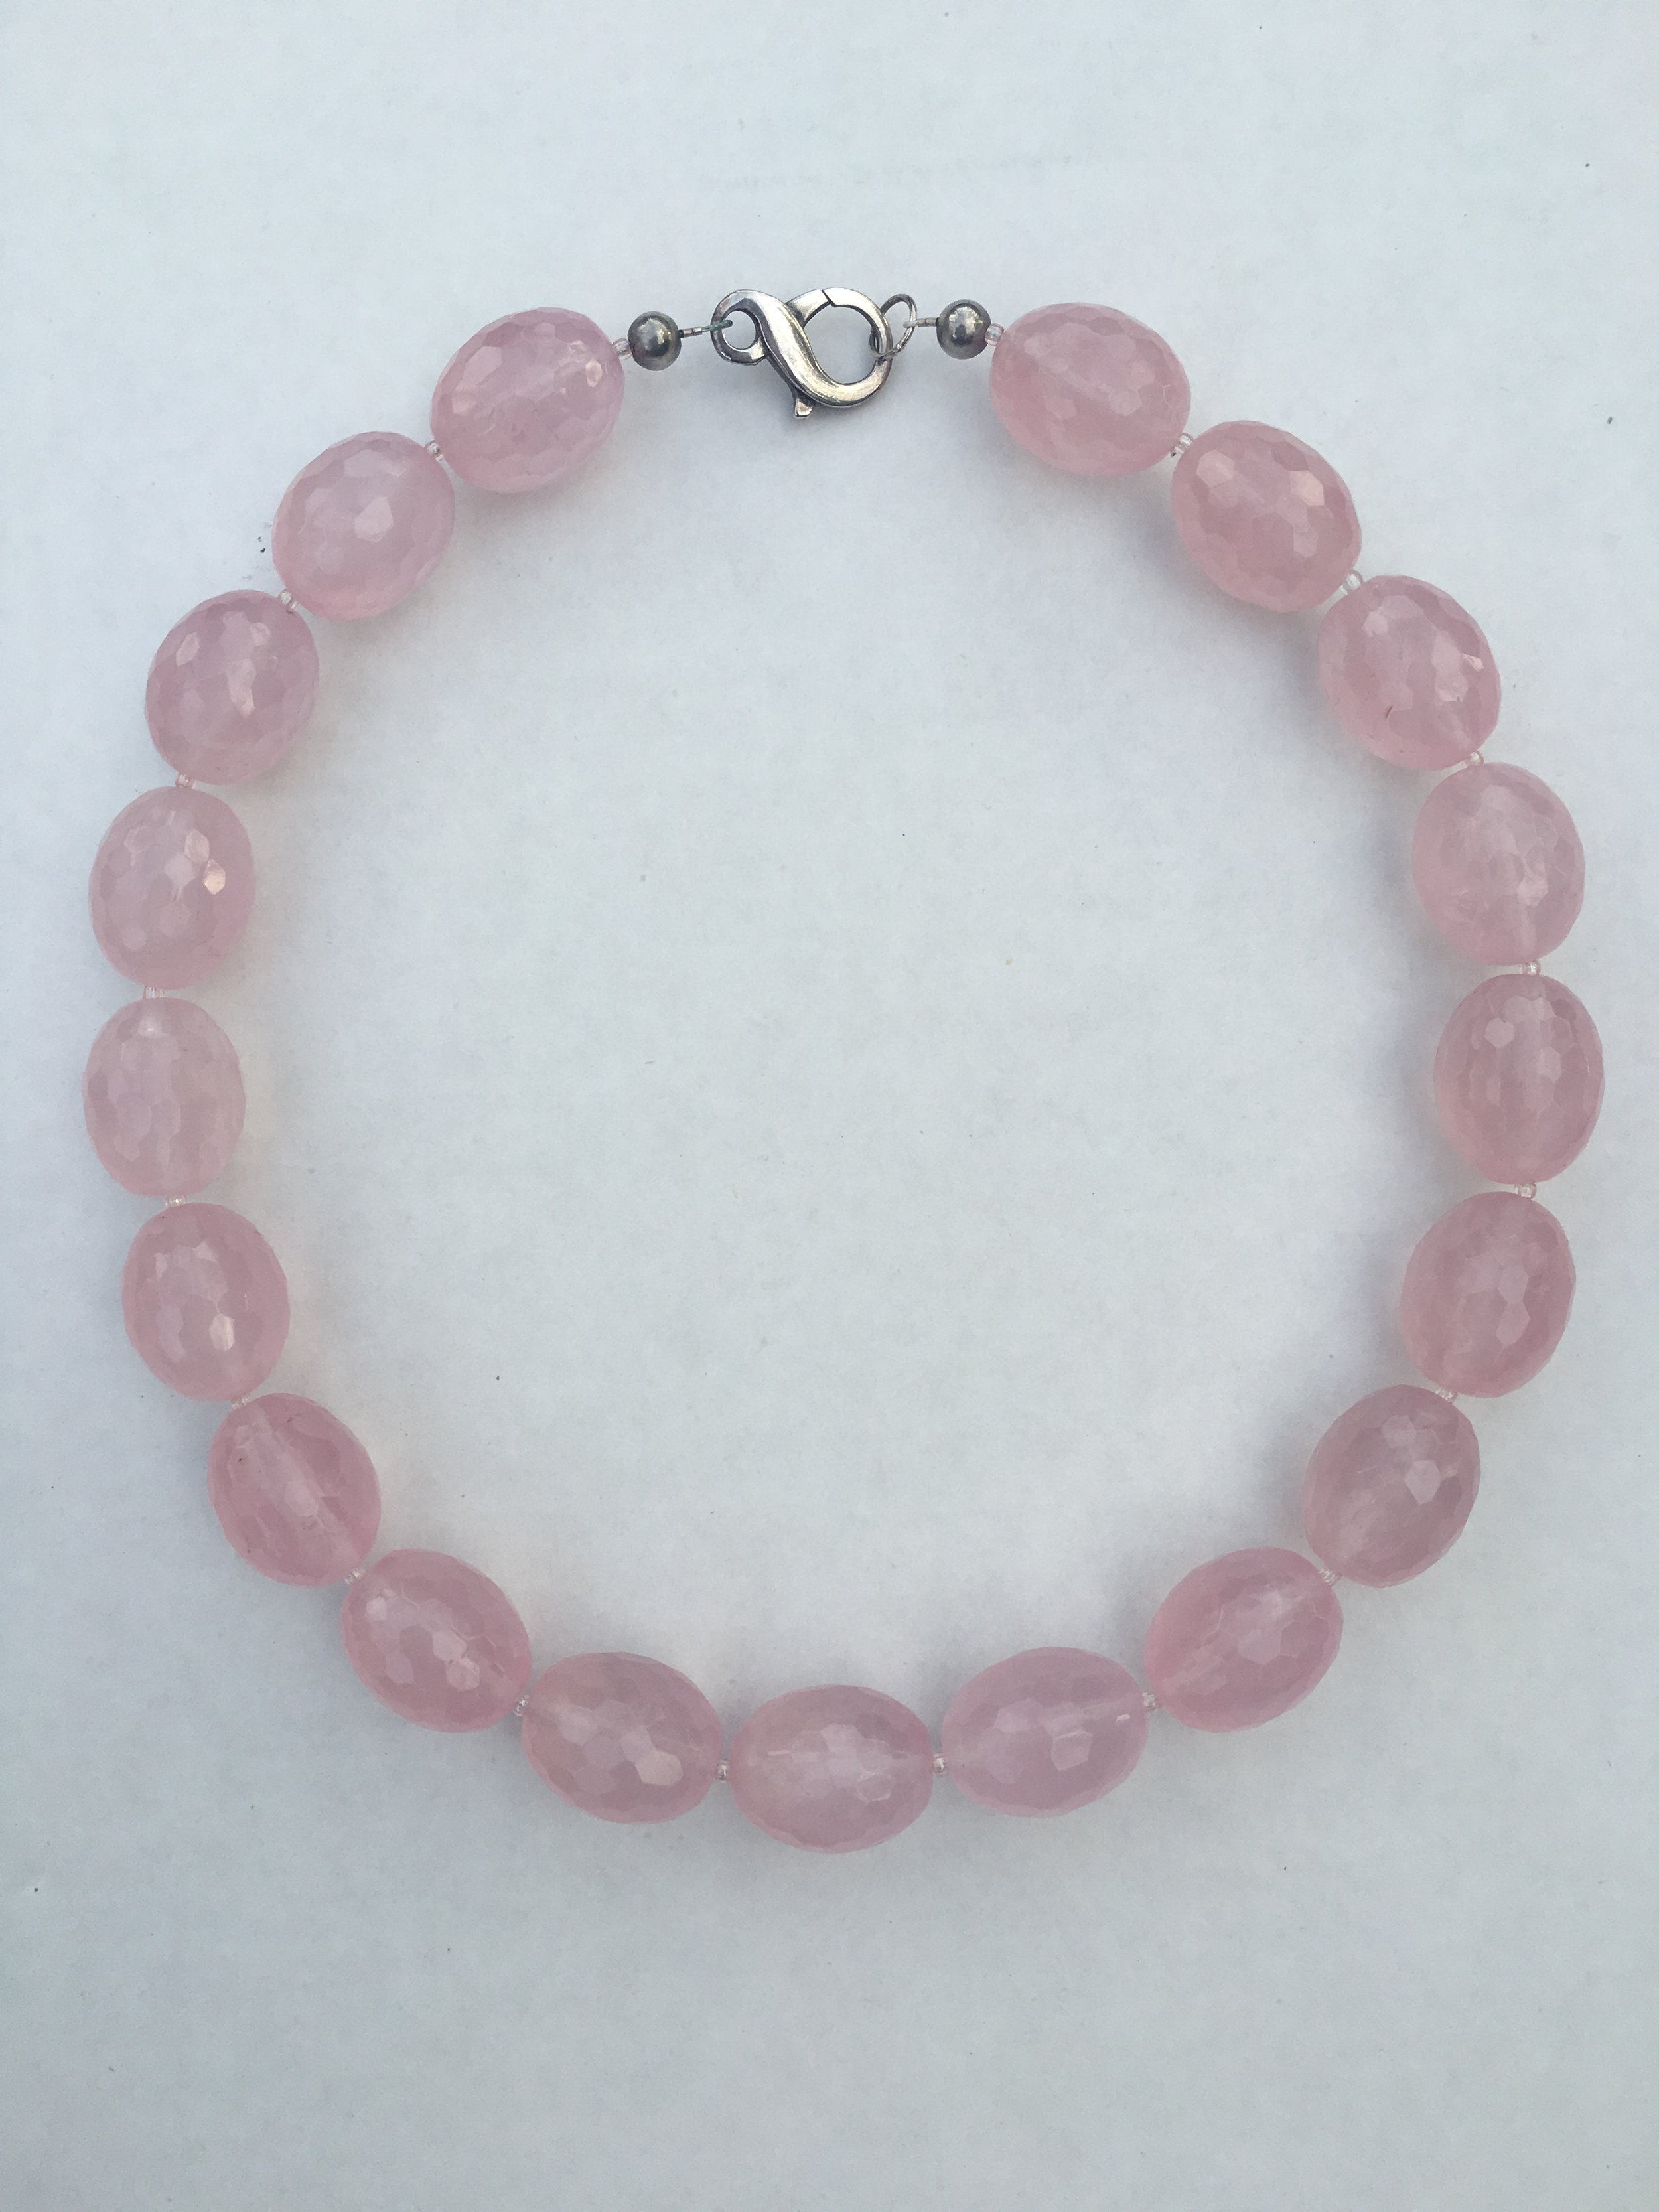 rose QUARTZ NECKLACE   Faceted oval rose quartz beaded necklace.  Stainless steel clasp.